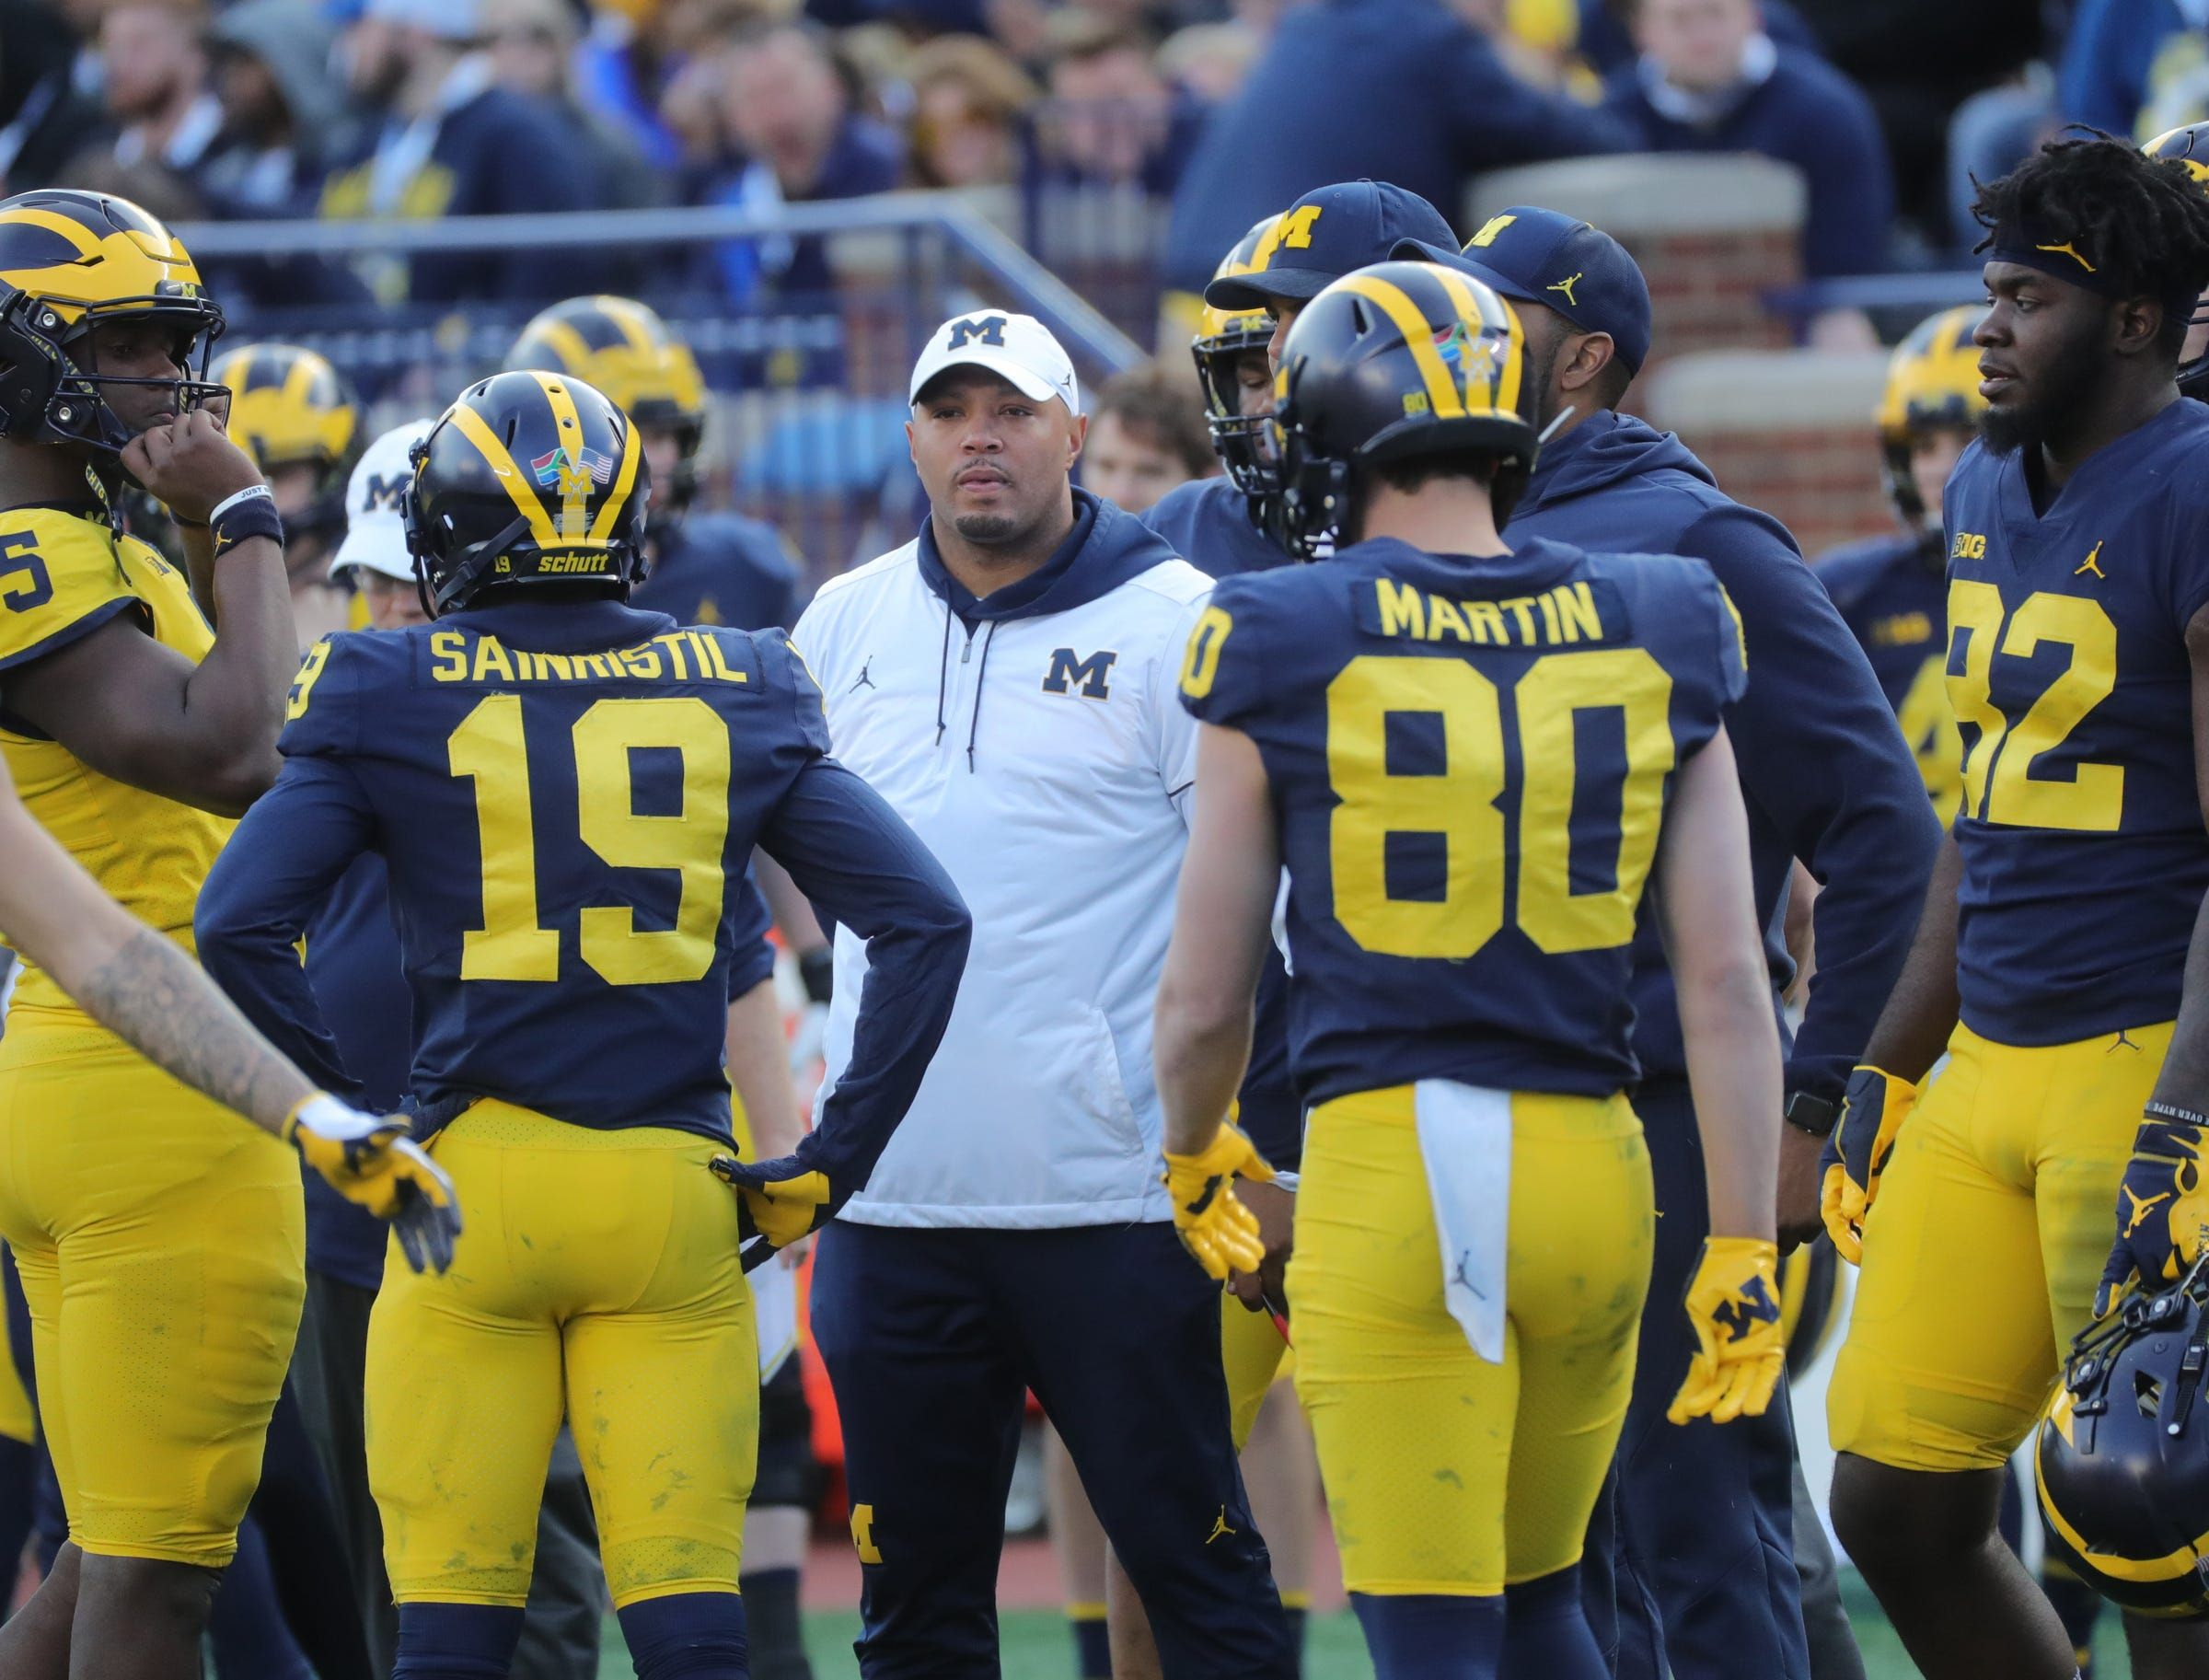 Michigan football vs. Middle Tennessee State Scouting